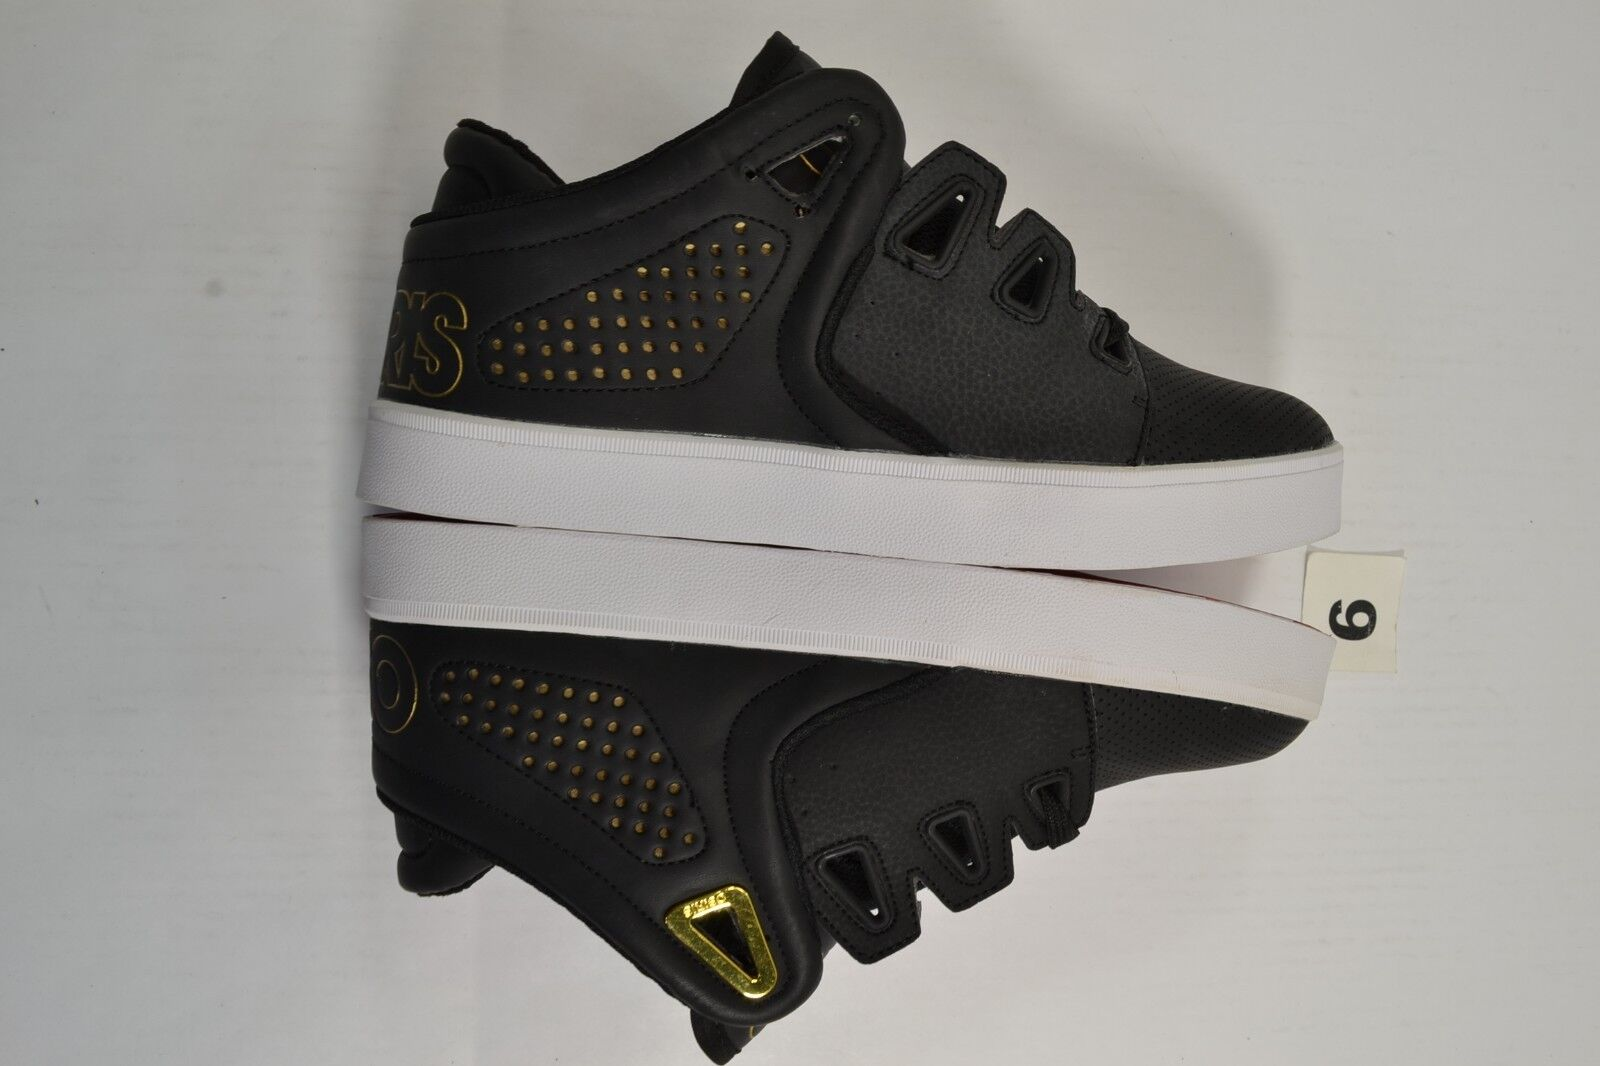 Osiris D3V Black Gold White Casual Skate Sneaker Discounted (201) Men's Shoes